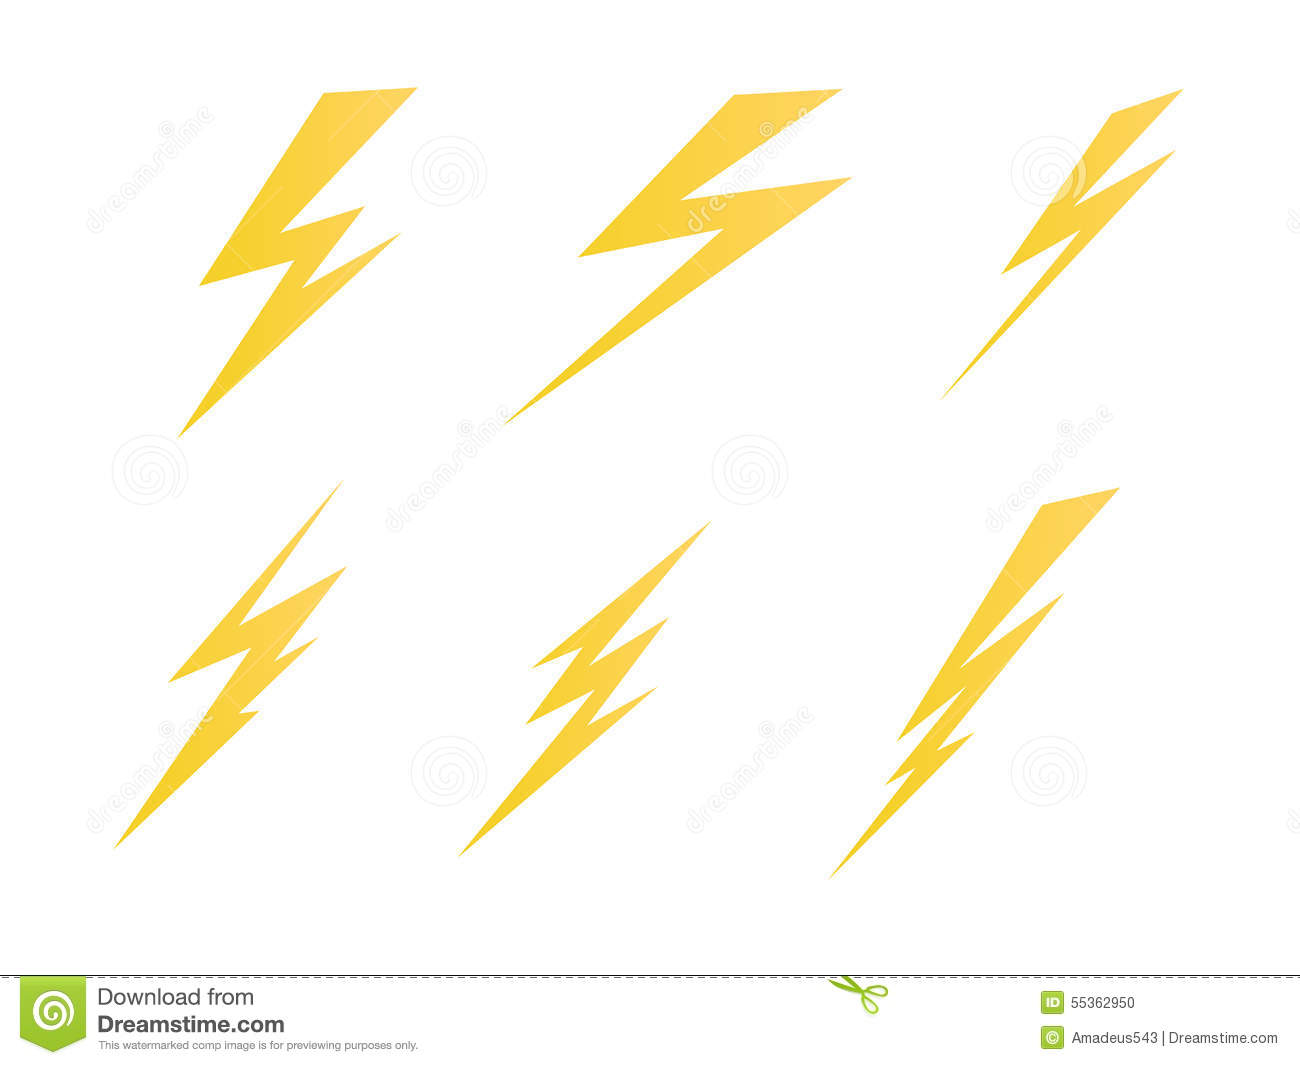 lighting electric charge icon vector symbol illustration stock vector illustration of flash electricity 55362950 dreamstime com